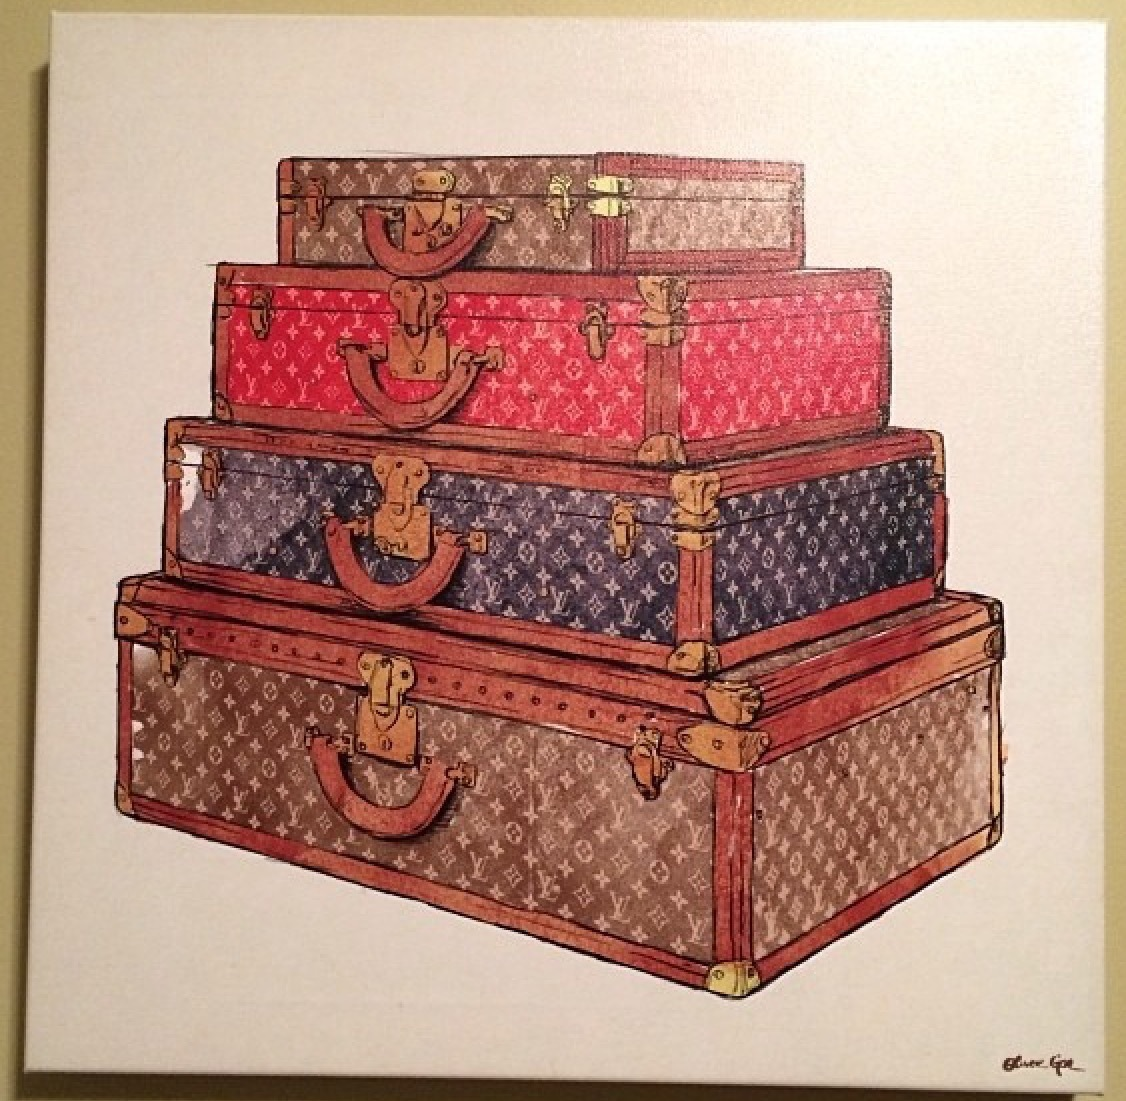 速達発送★Oliver Gal★The Royal Luggage★キャンバス 91x91cm